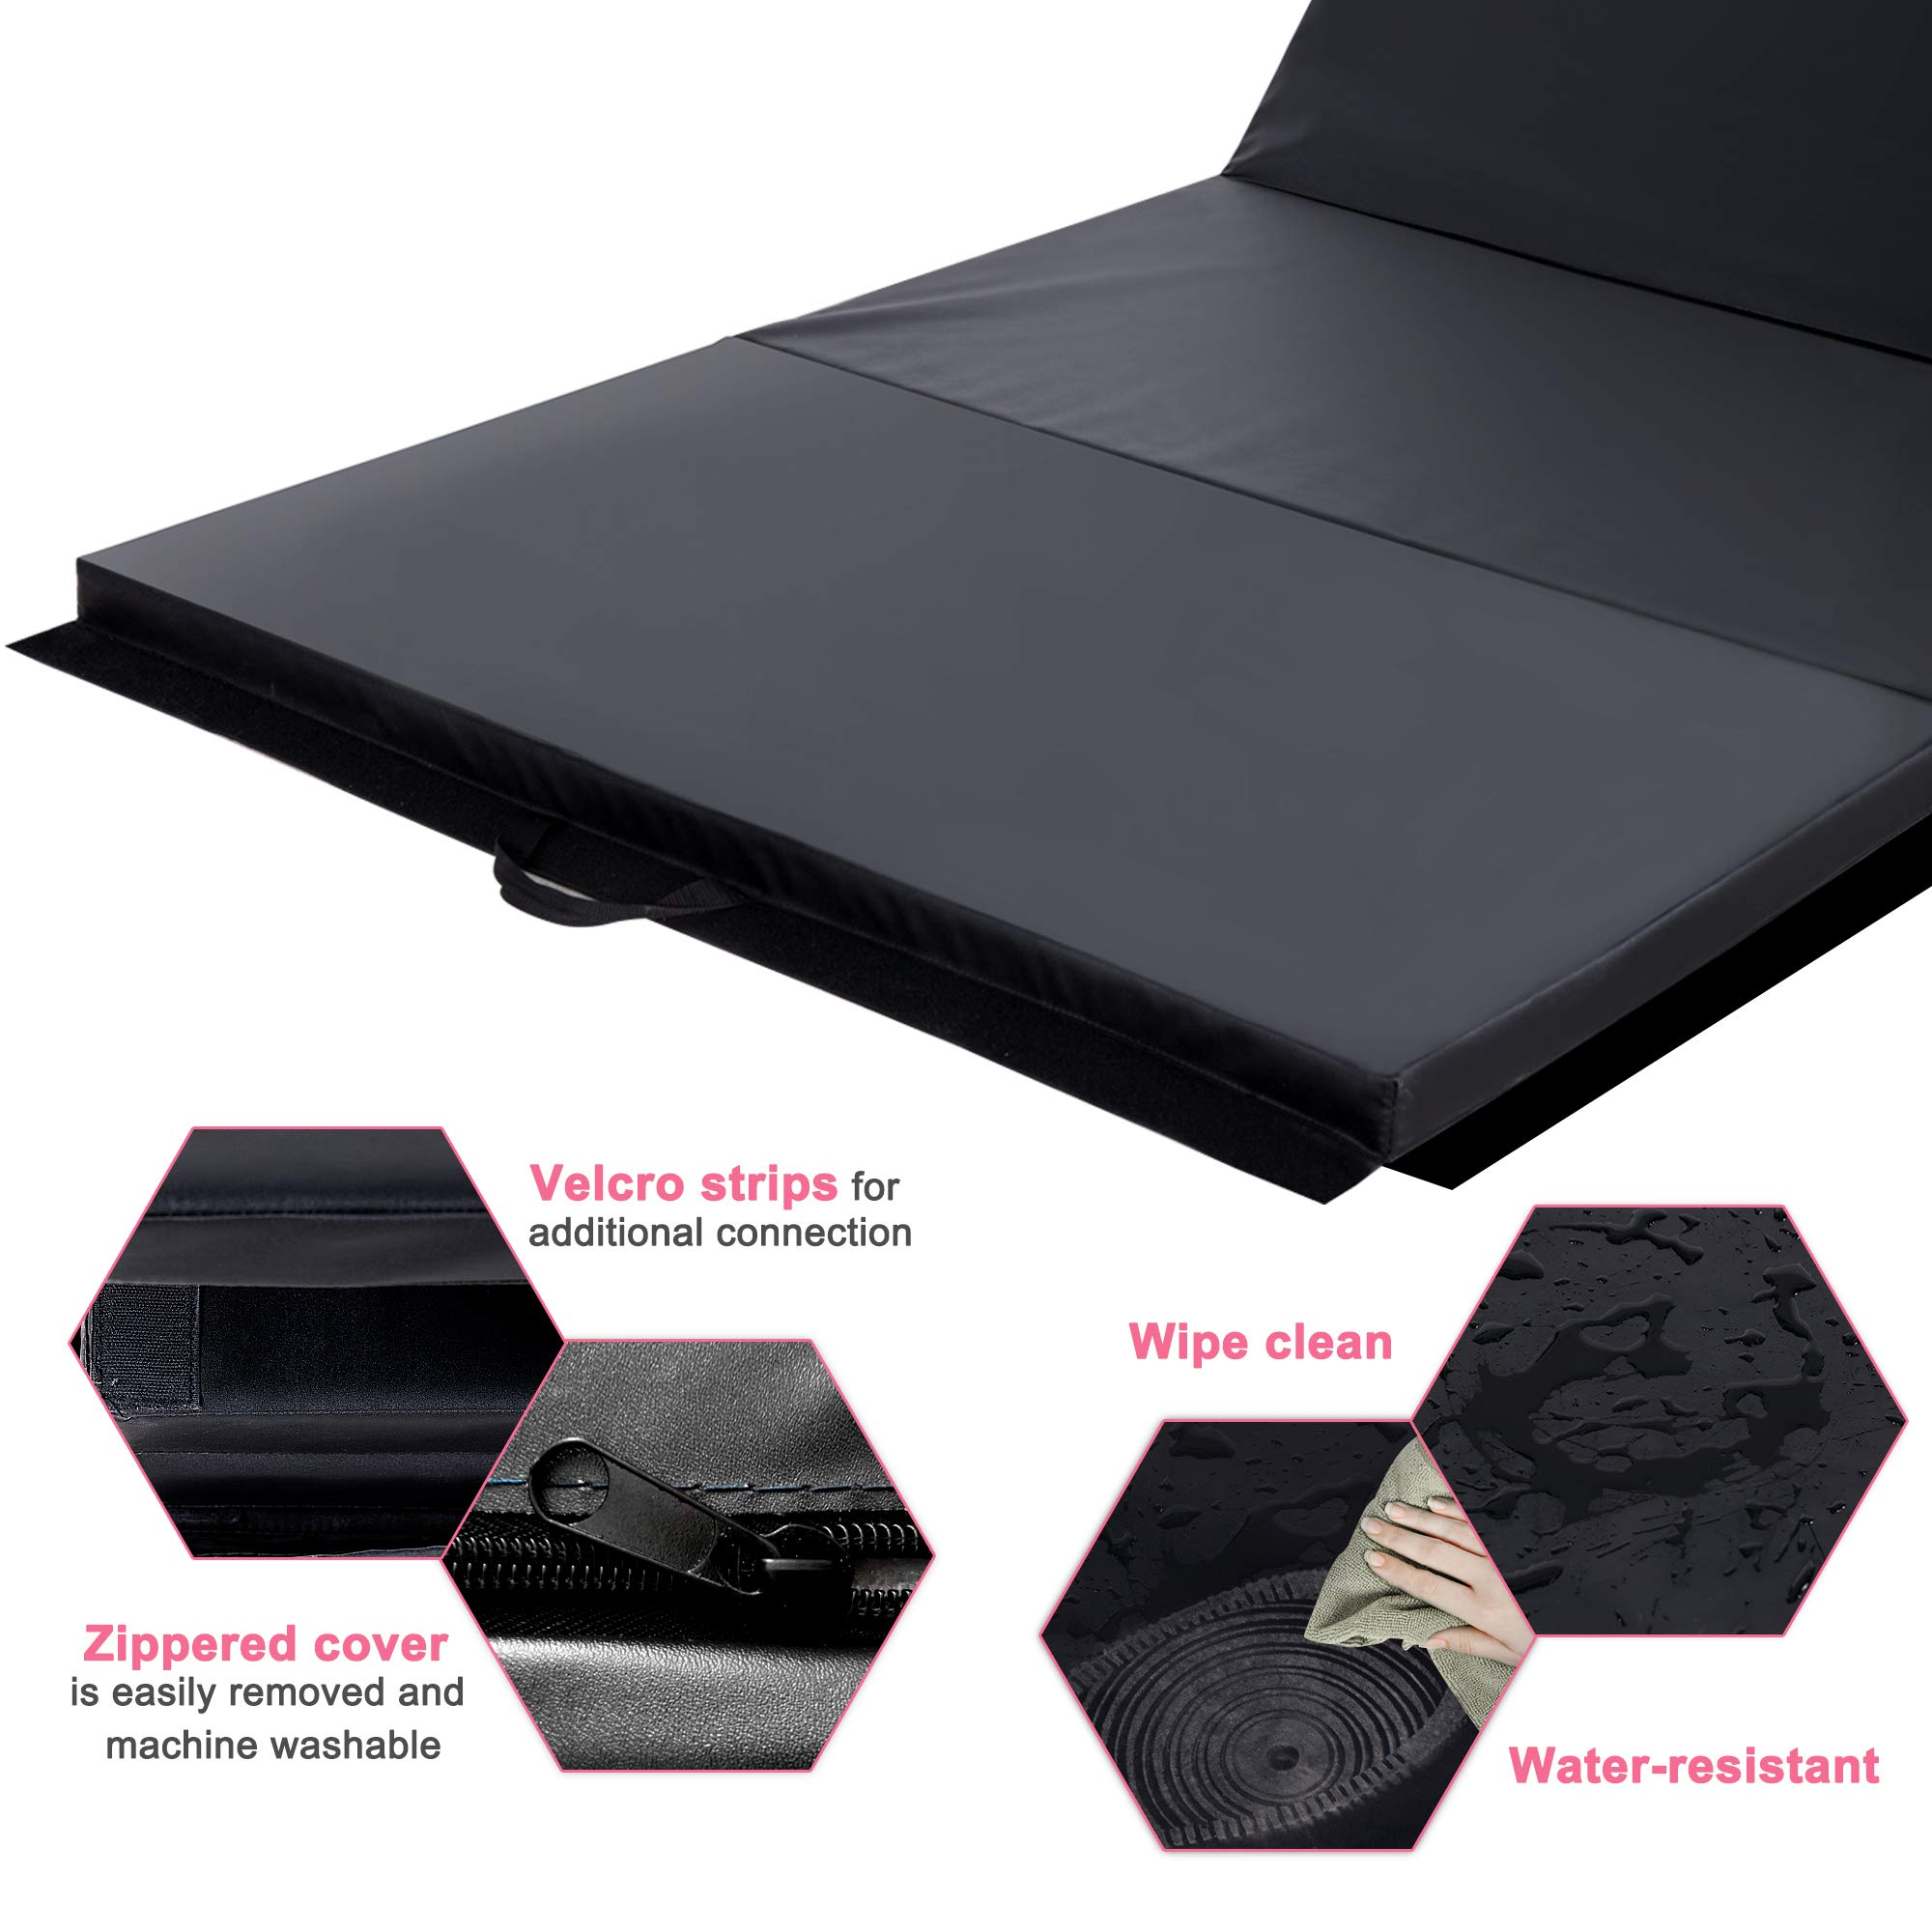 Homevibes 4' x 10' x 2'' Gymnastics Mat Thick Folding Panel Tumbling Mat Gym Exercise Aerobics Mat with Handle Compatibility with Stretching Yoga Cheerlanding Martial Arts, Black by Homevibes (Image #4)